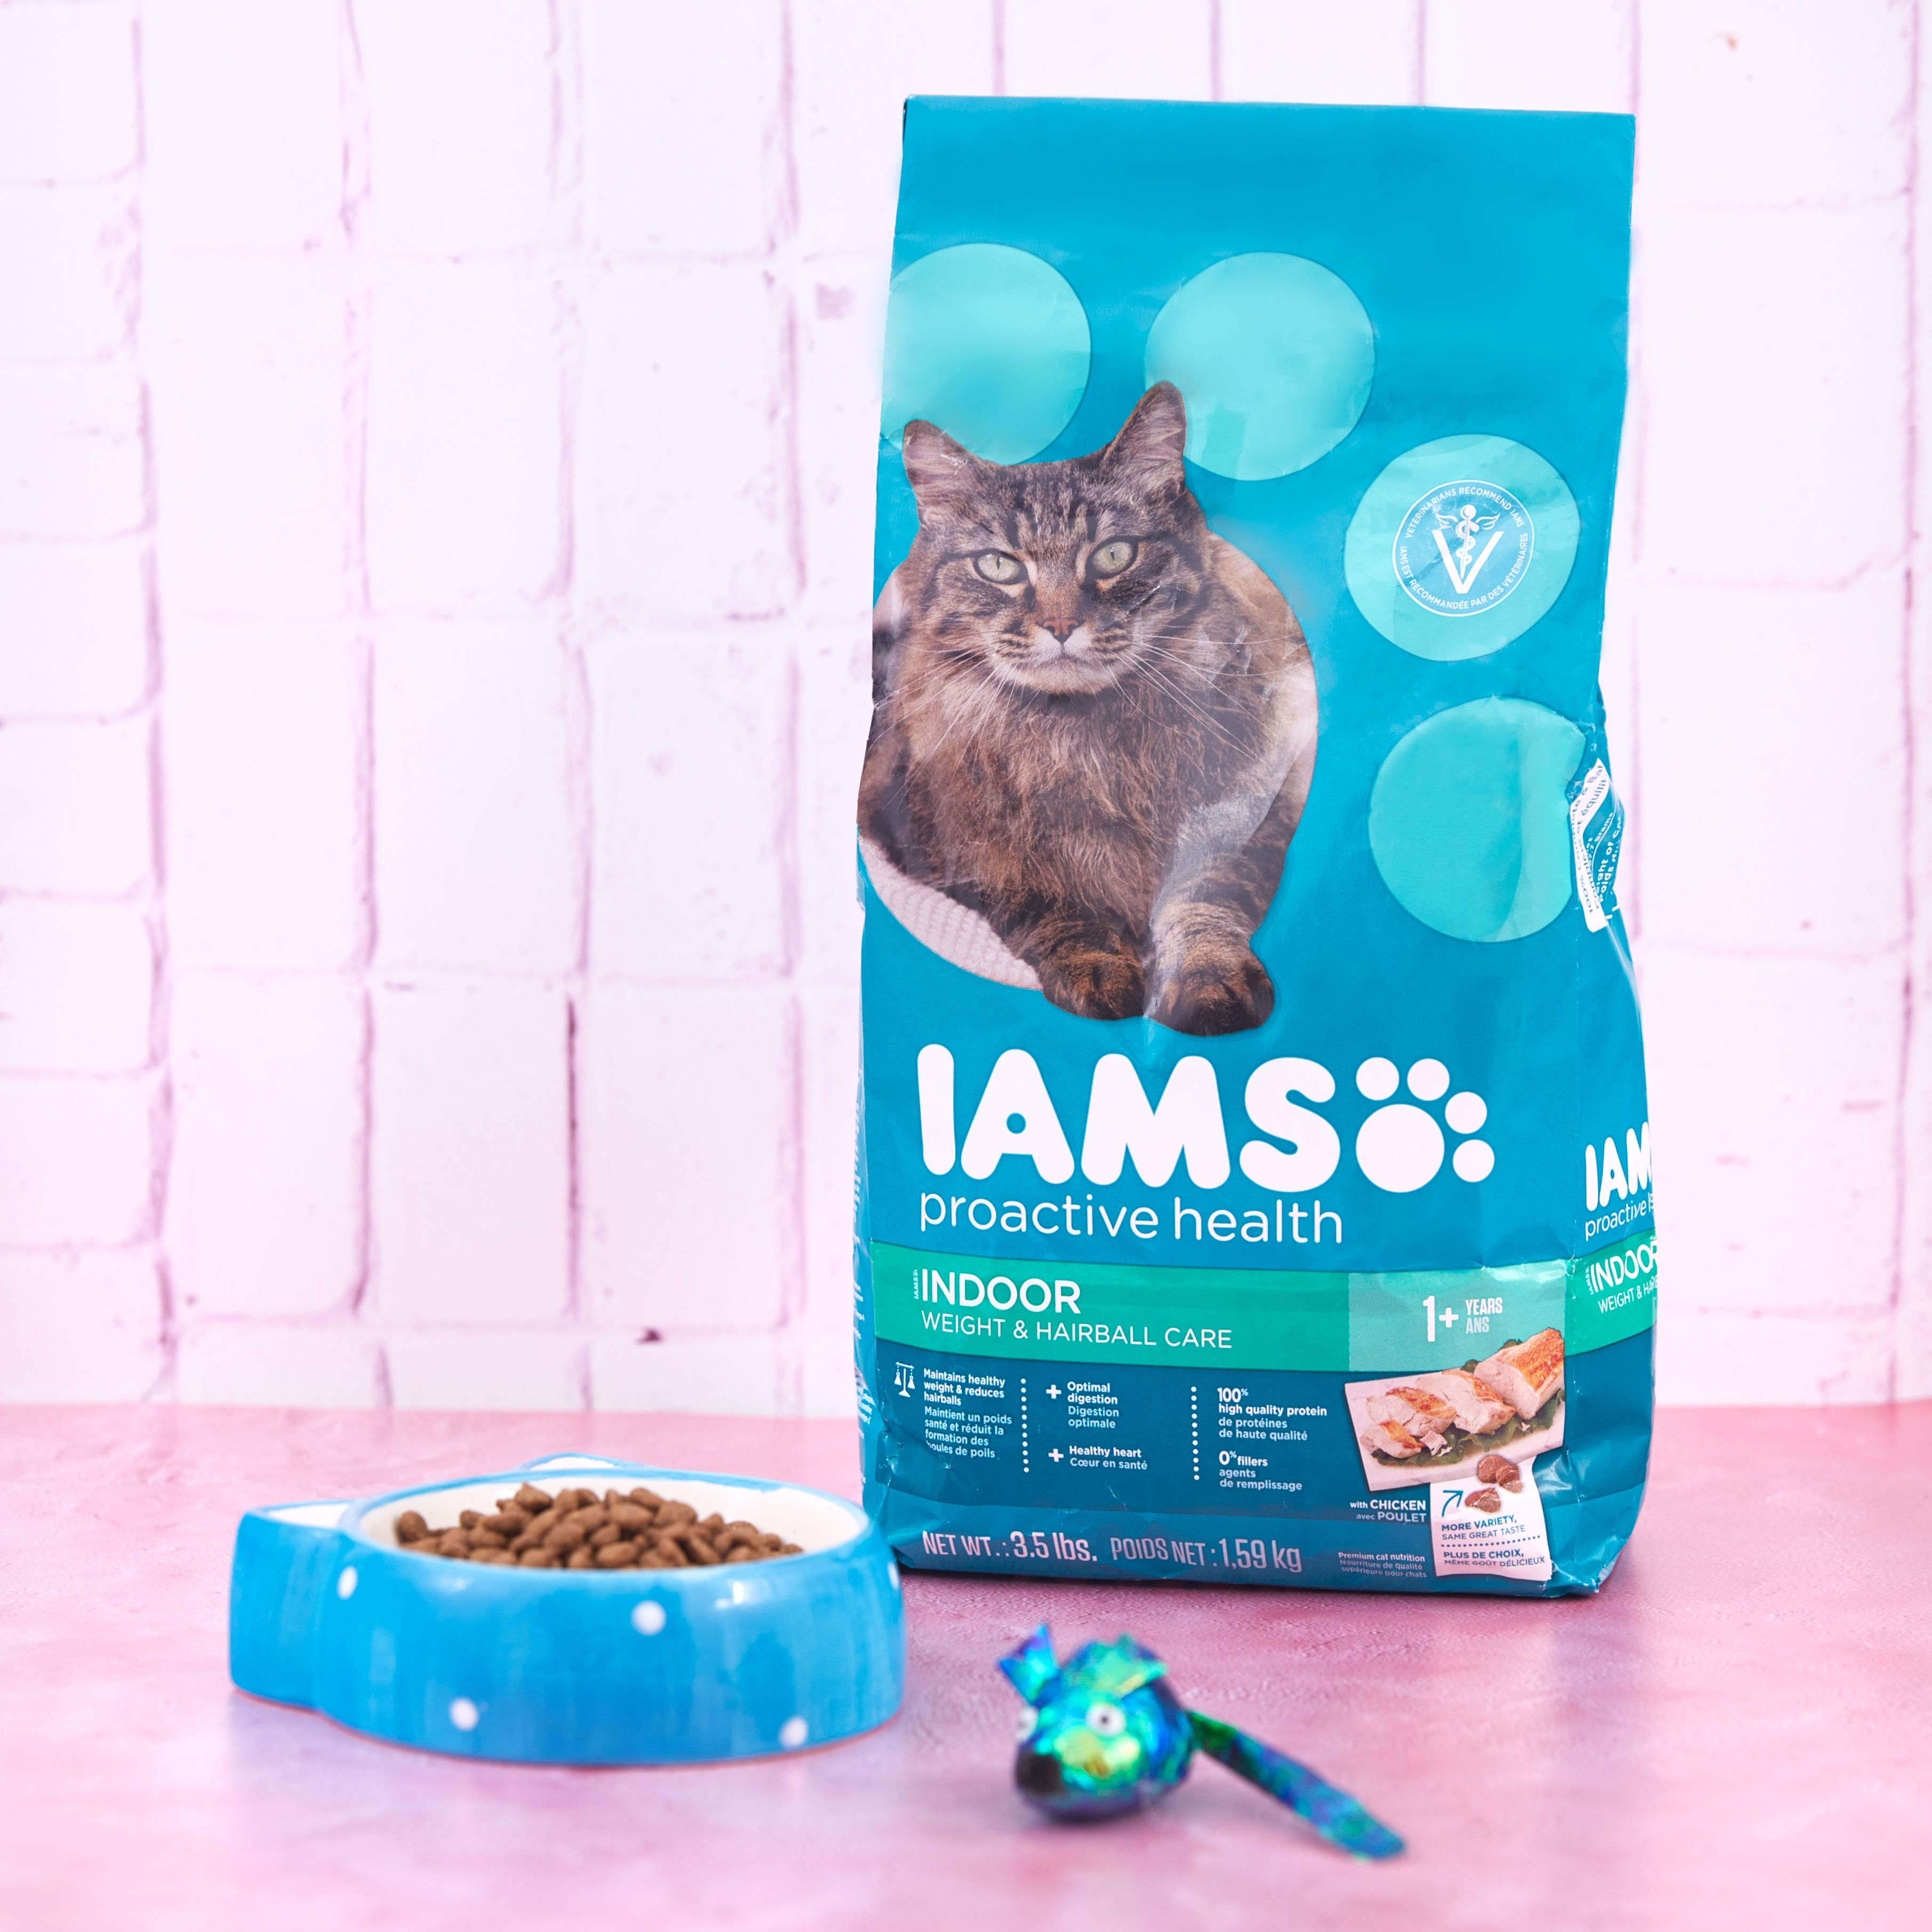 Iams Proactive Health Indoor Weight Hairball Care Dry Cat Food 16 Lb Bag Chewy Com Dry Cat Food Cat Food Healthy Digestive System